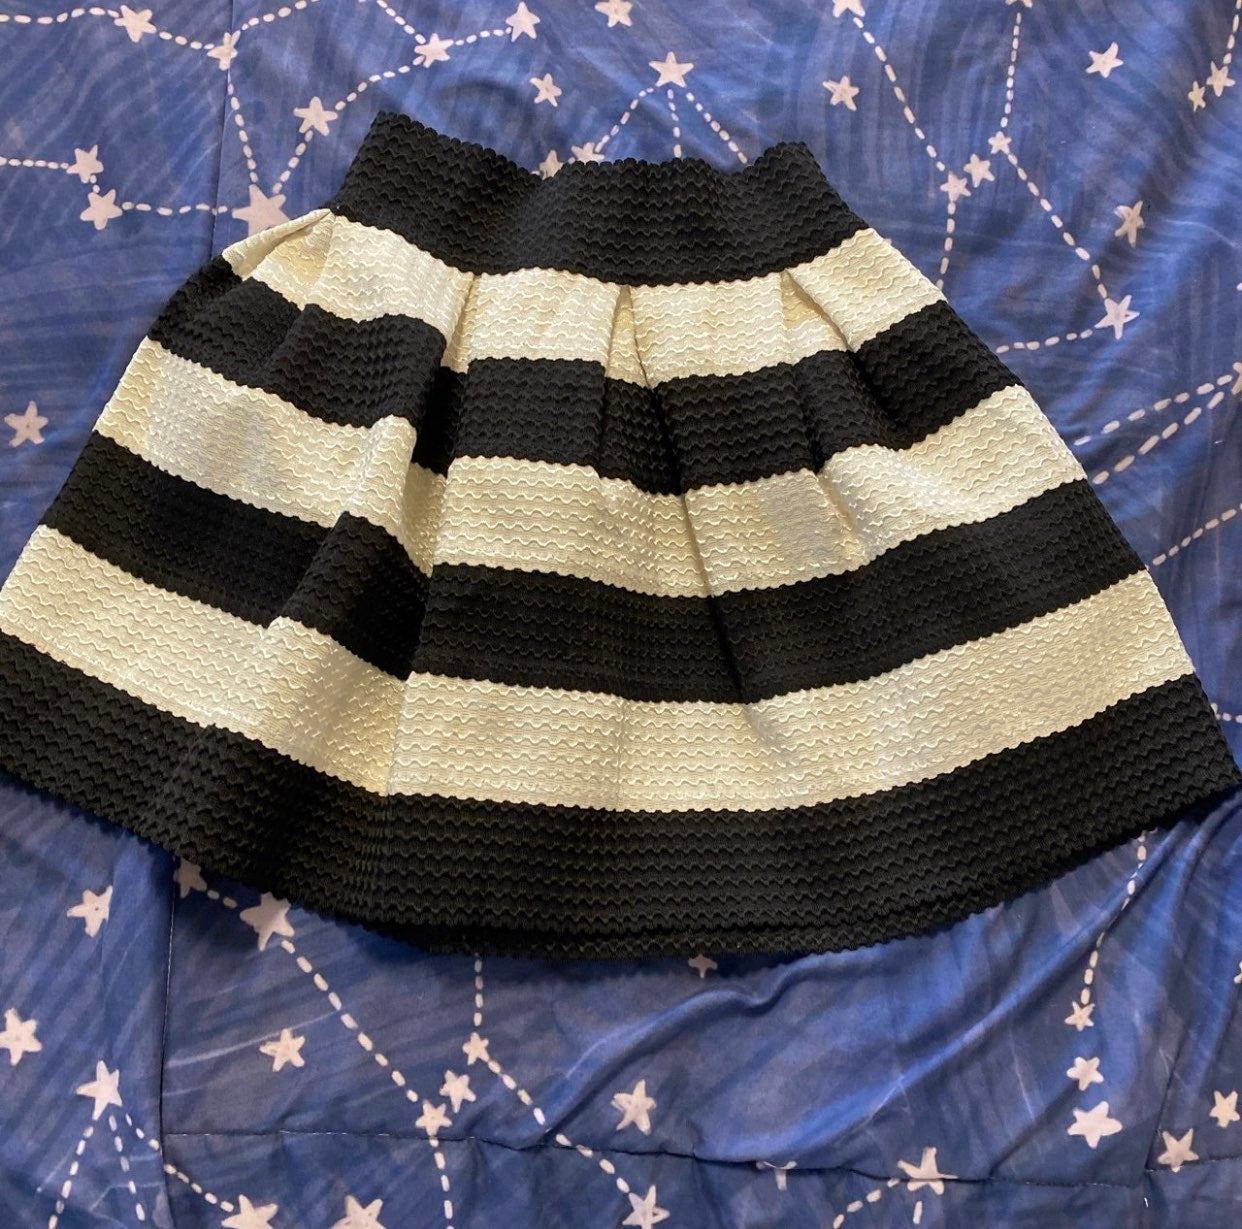 Black and white striped pleated skirt